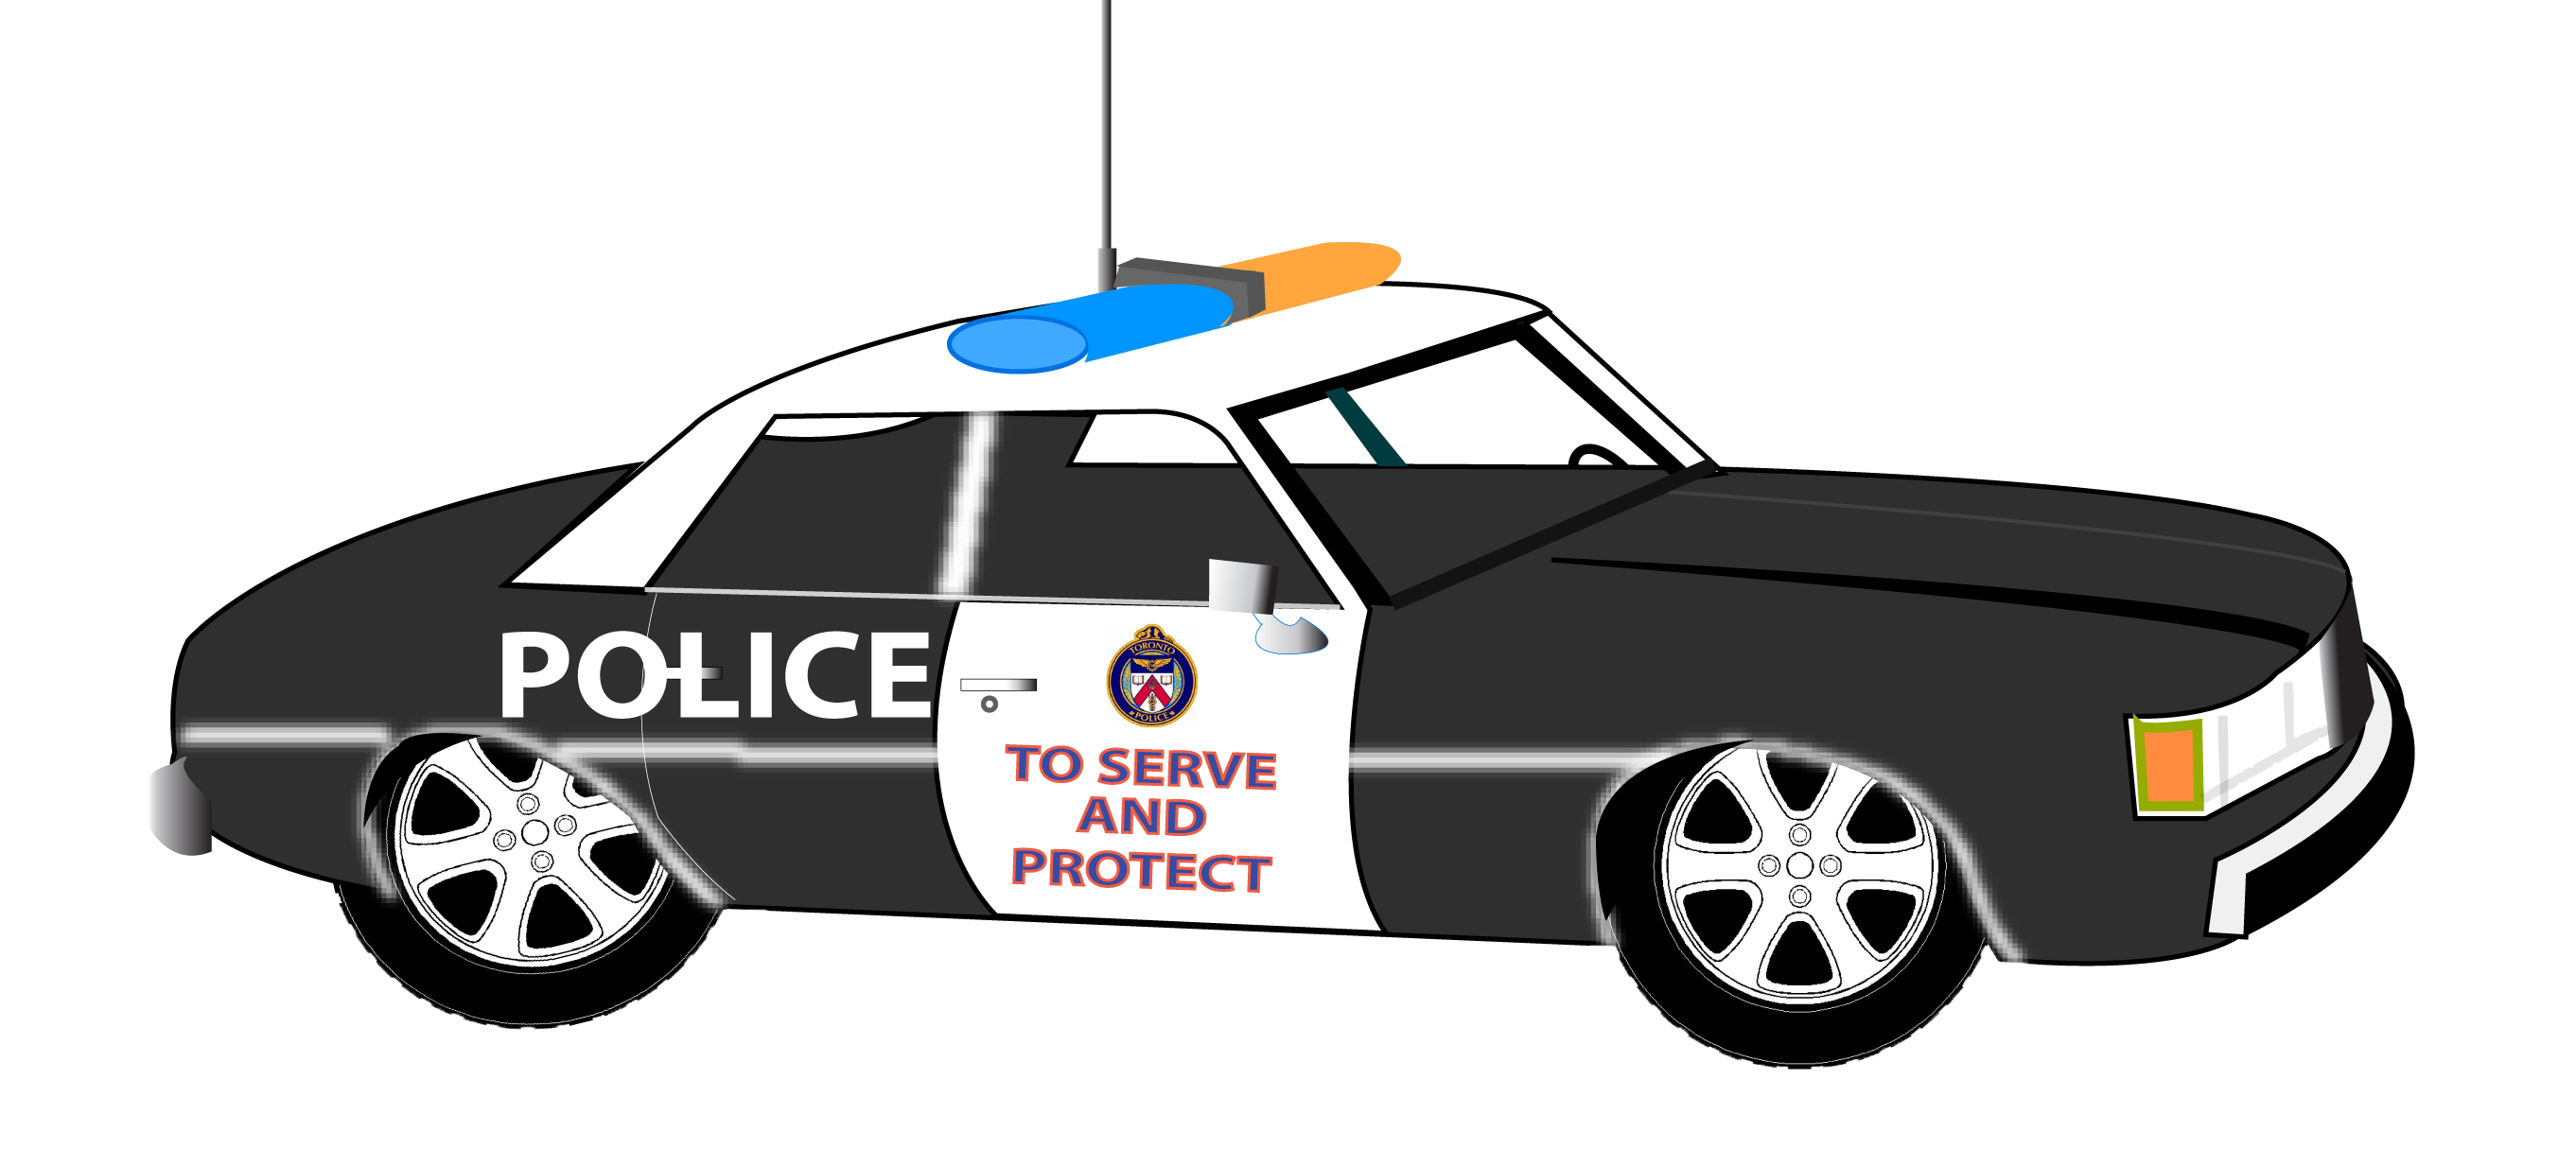 Police Car Clip Art Free Vector In Open -Police car clip art free vector in open office drawing svg-12